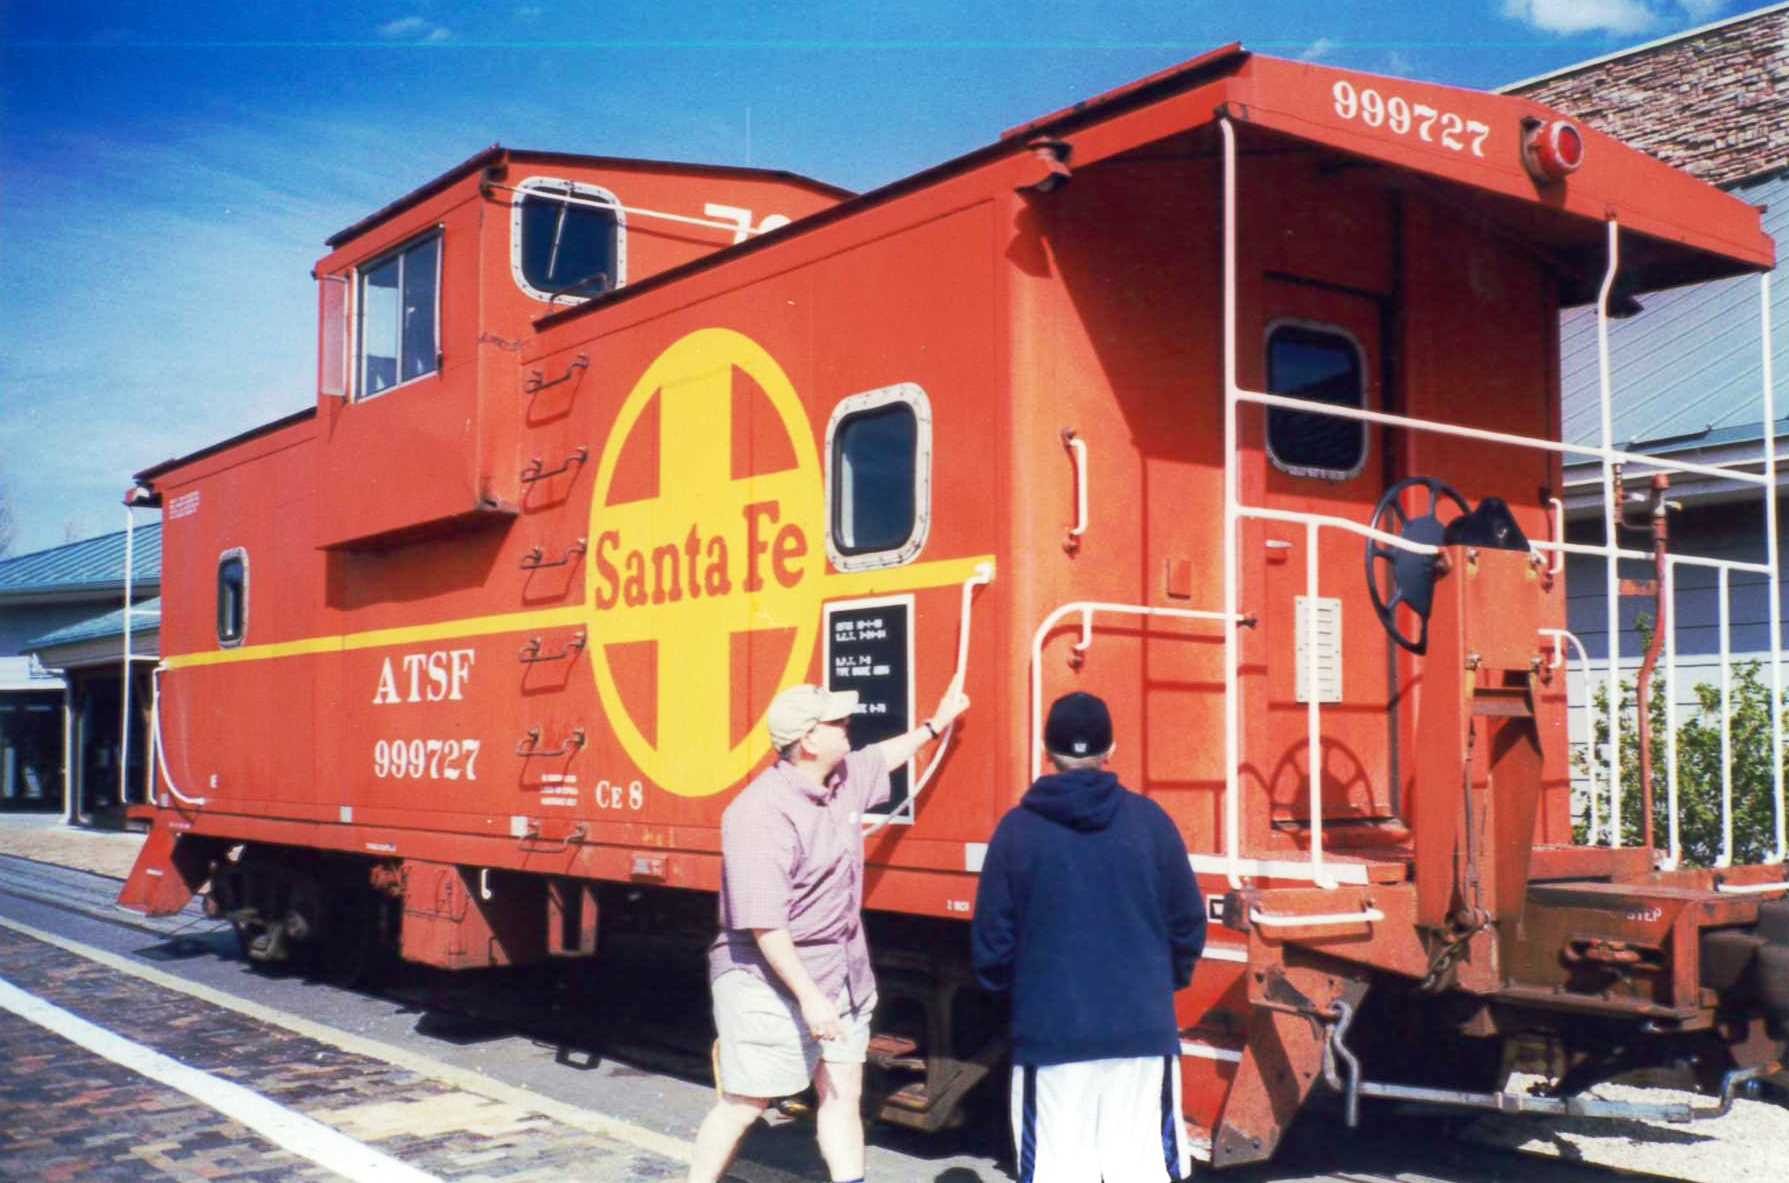 The Arizona State Railroad Museum in Williams features a Santa Fe Railroad caboose